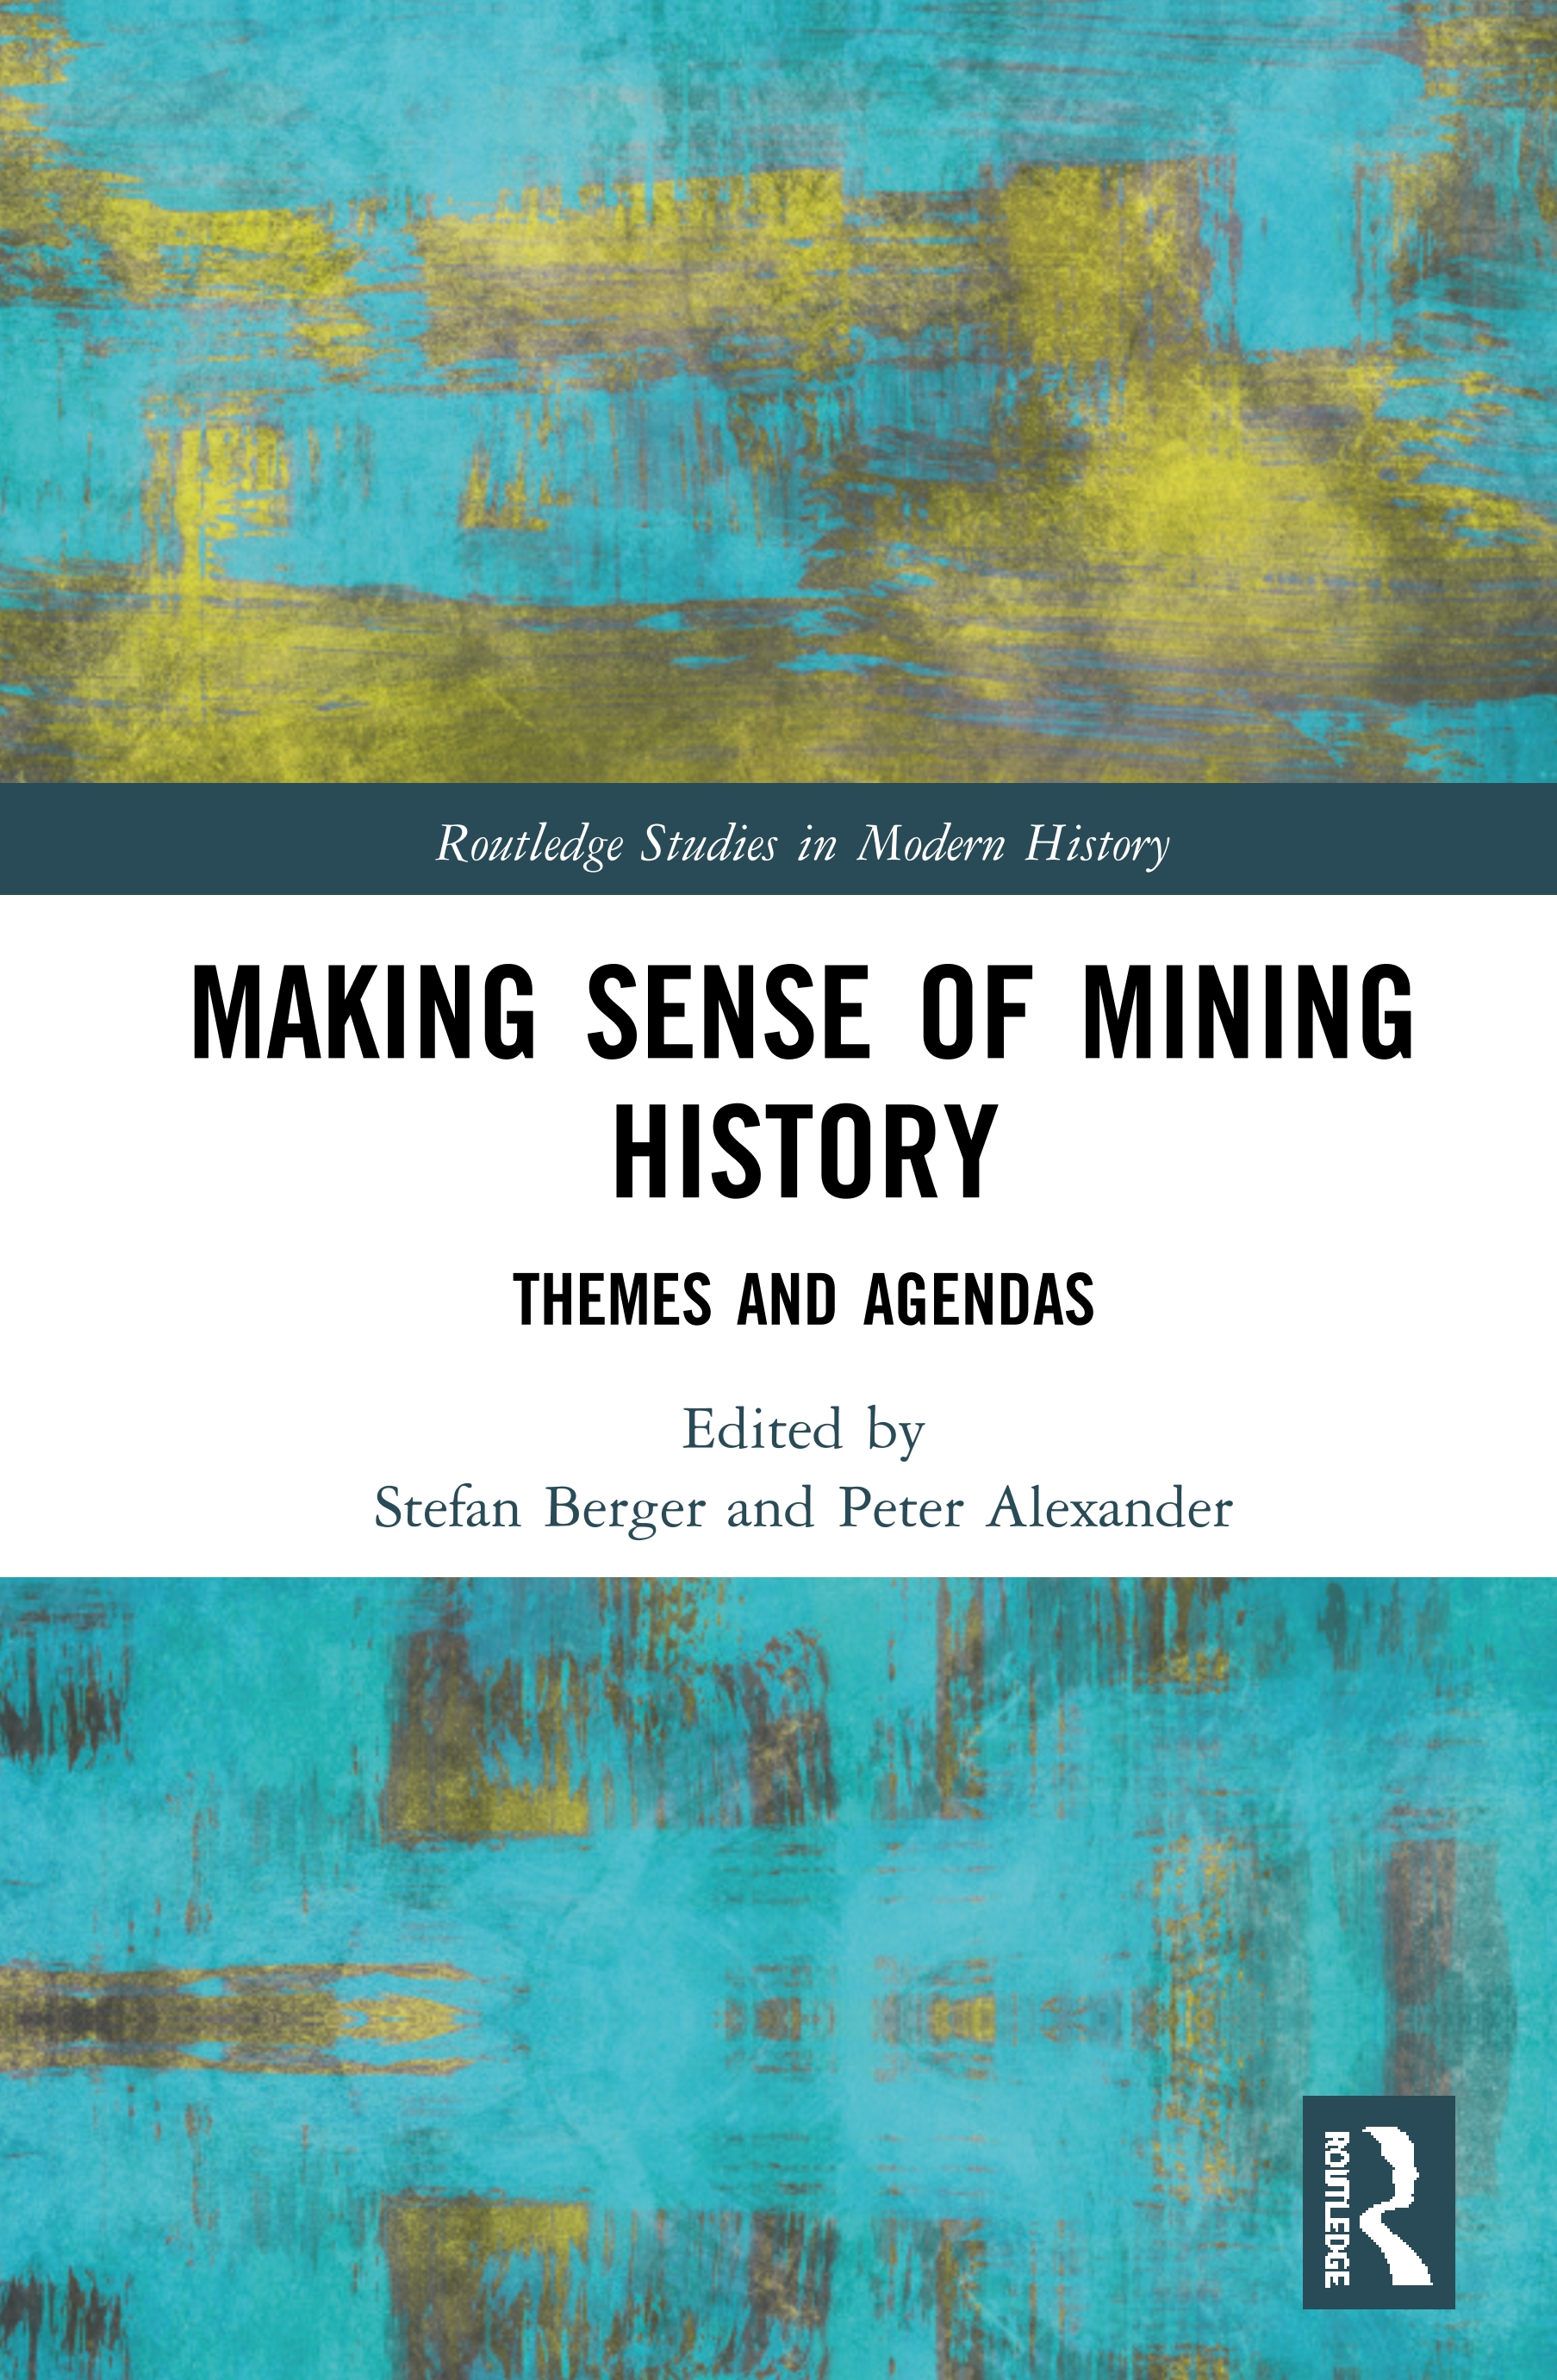 Making Sense of Mining History: Themes and Agendas book cover